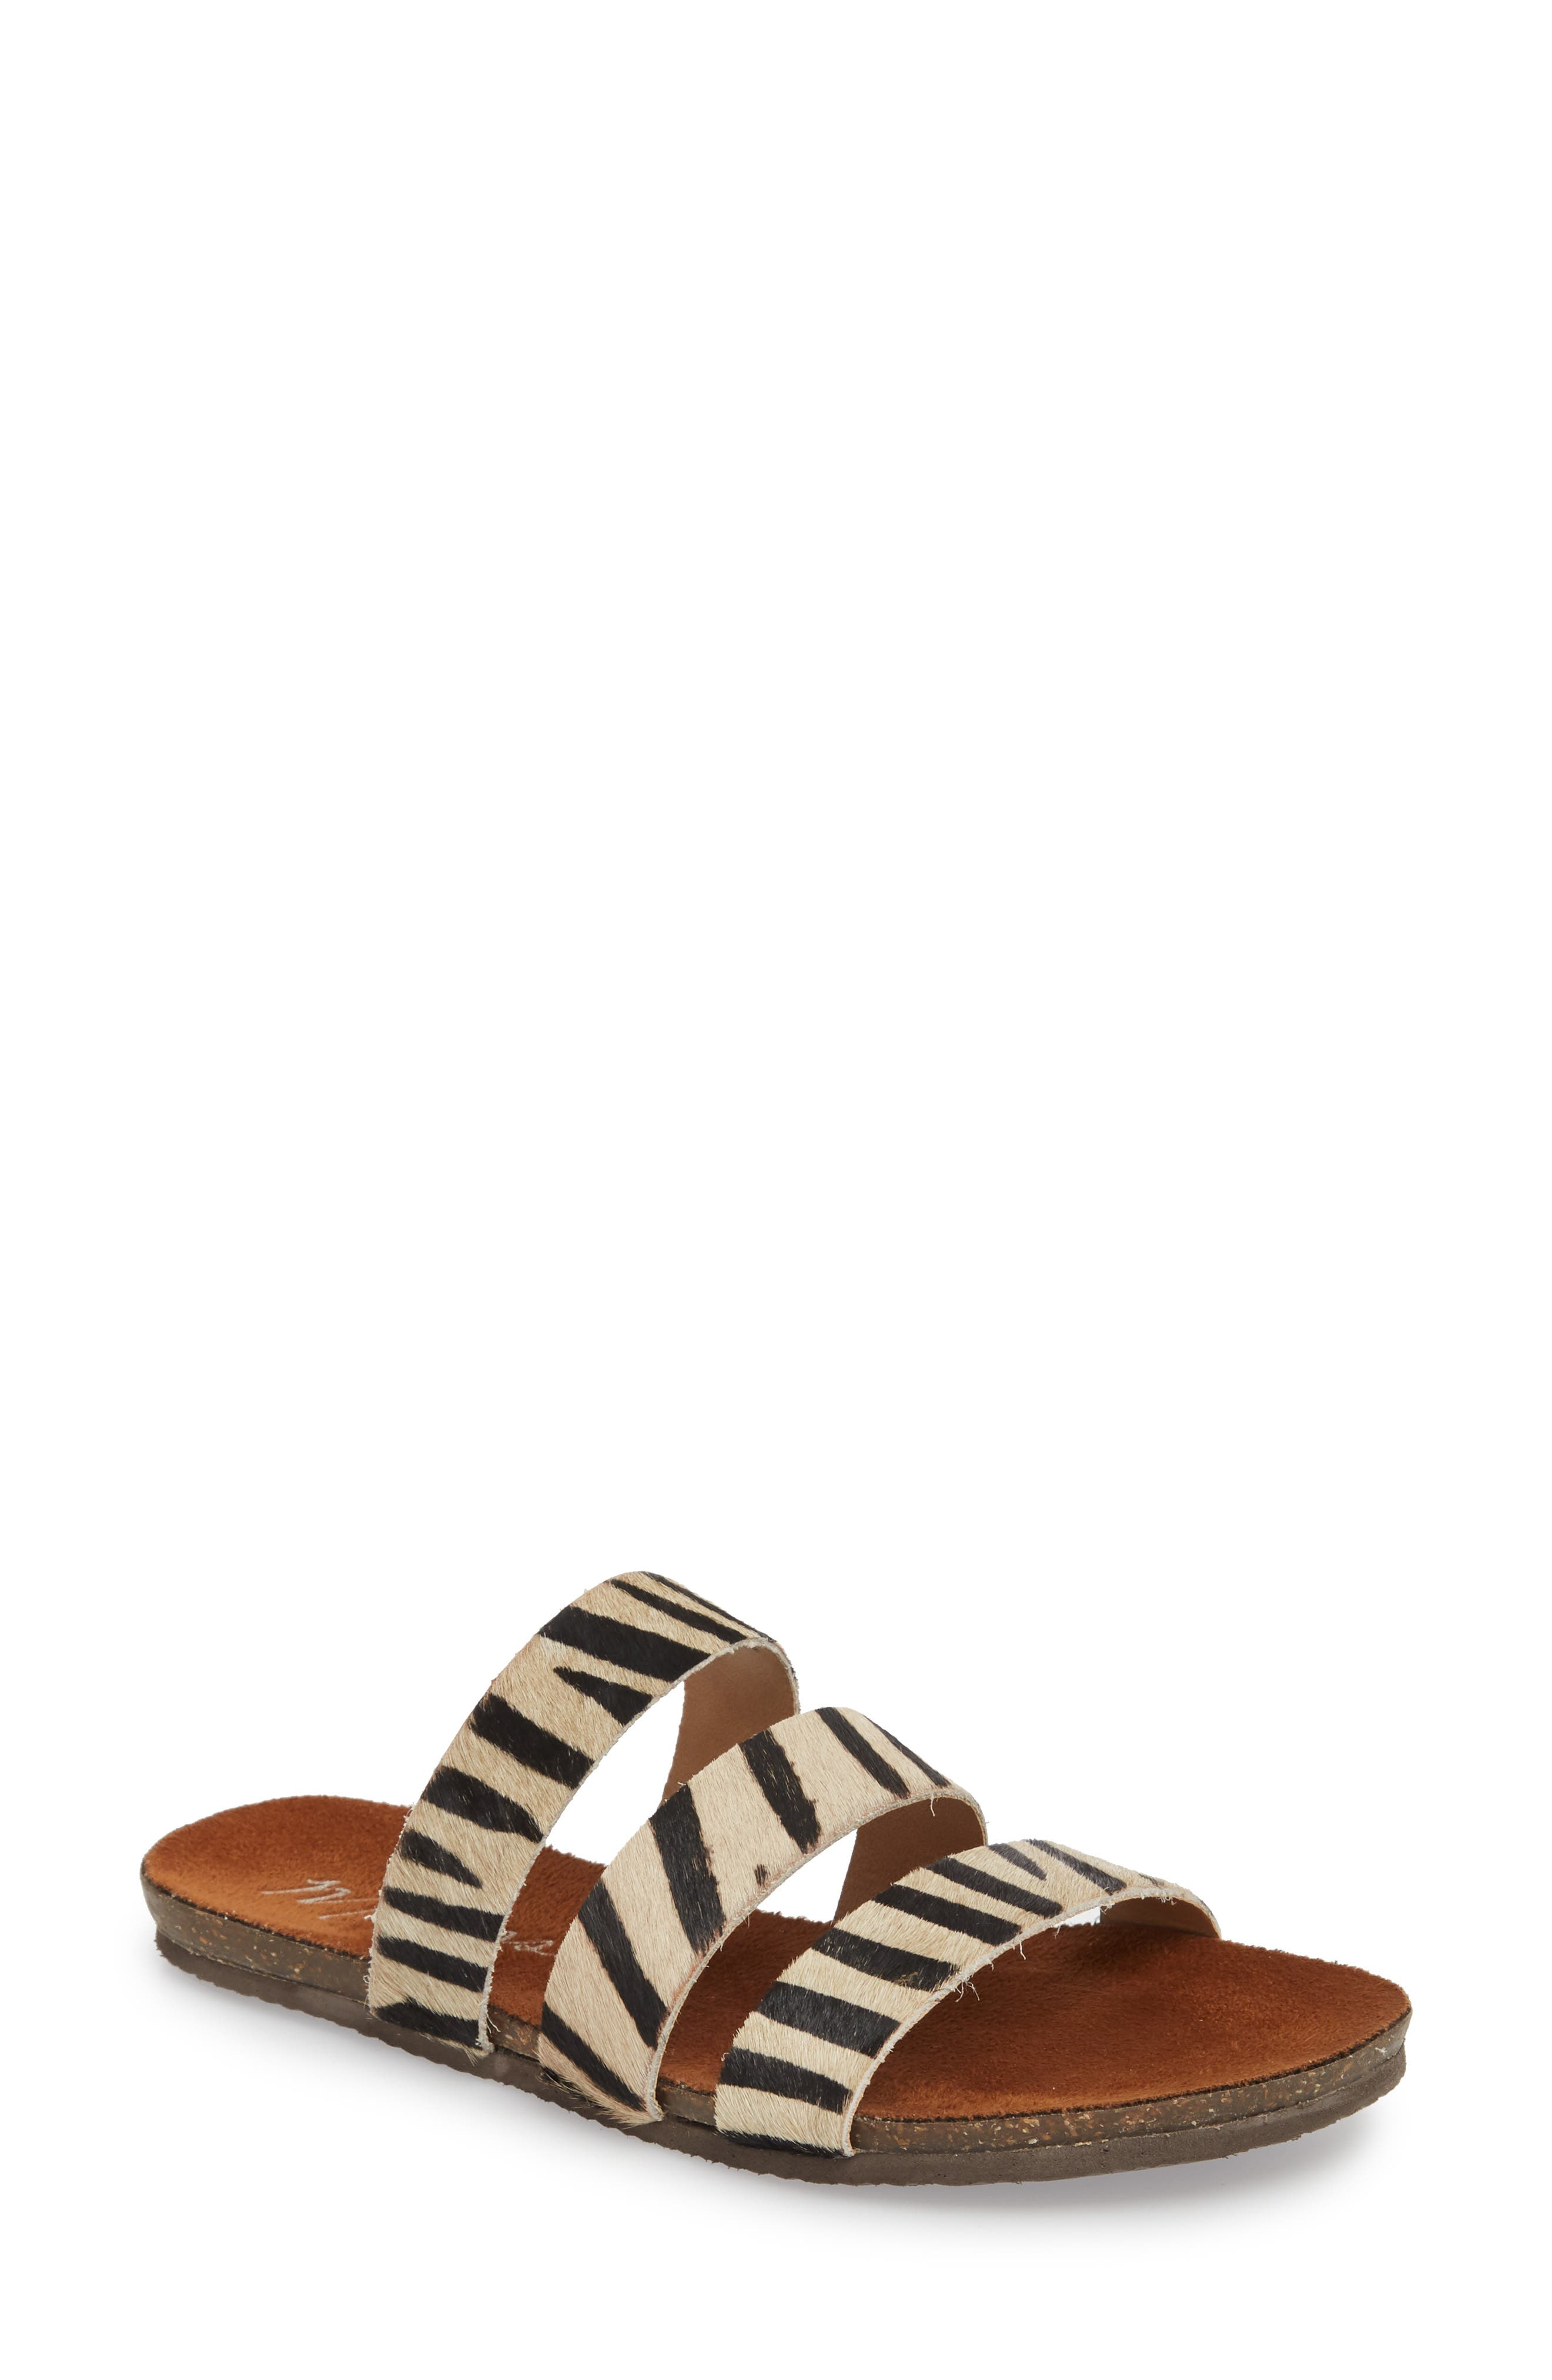 Florence Slide Sandal,                         Main,                         color, ZEBRA CALF HAIR